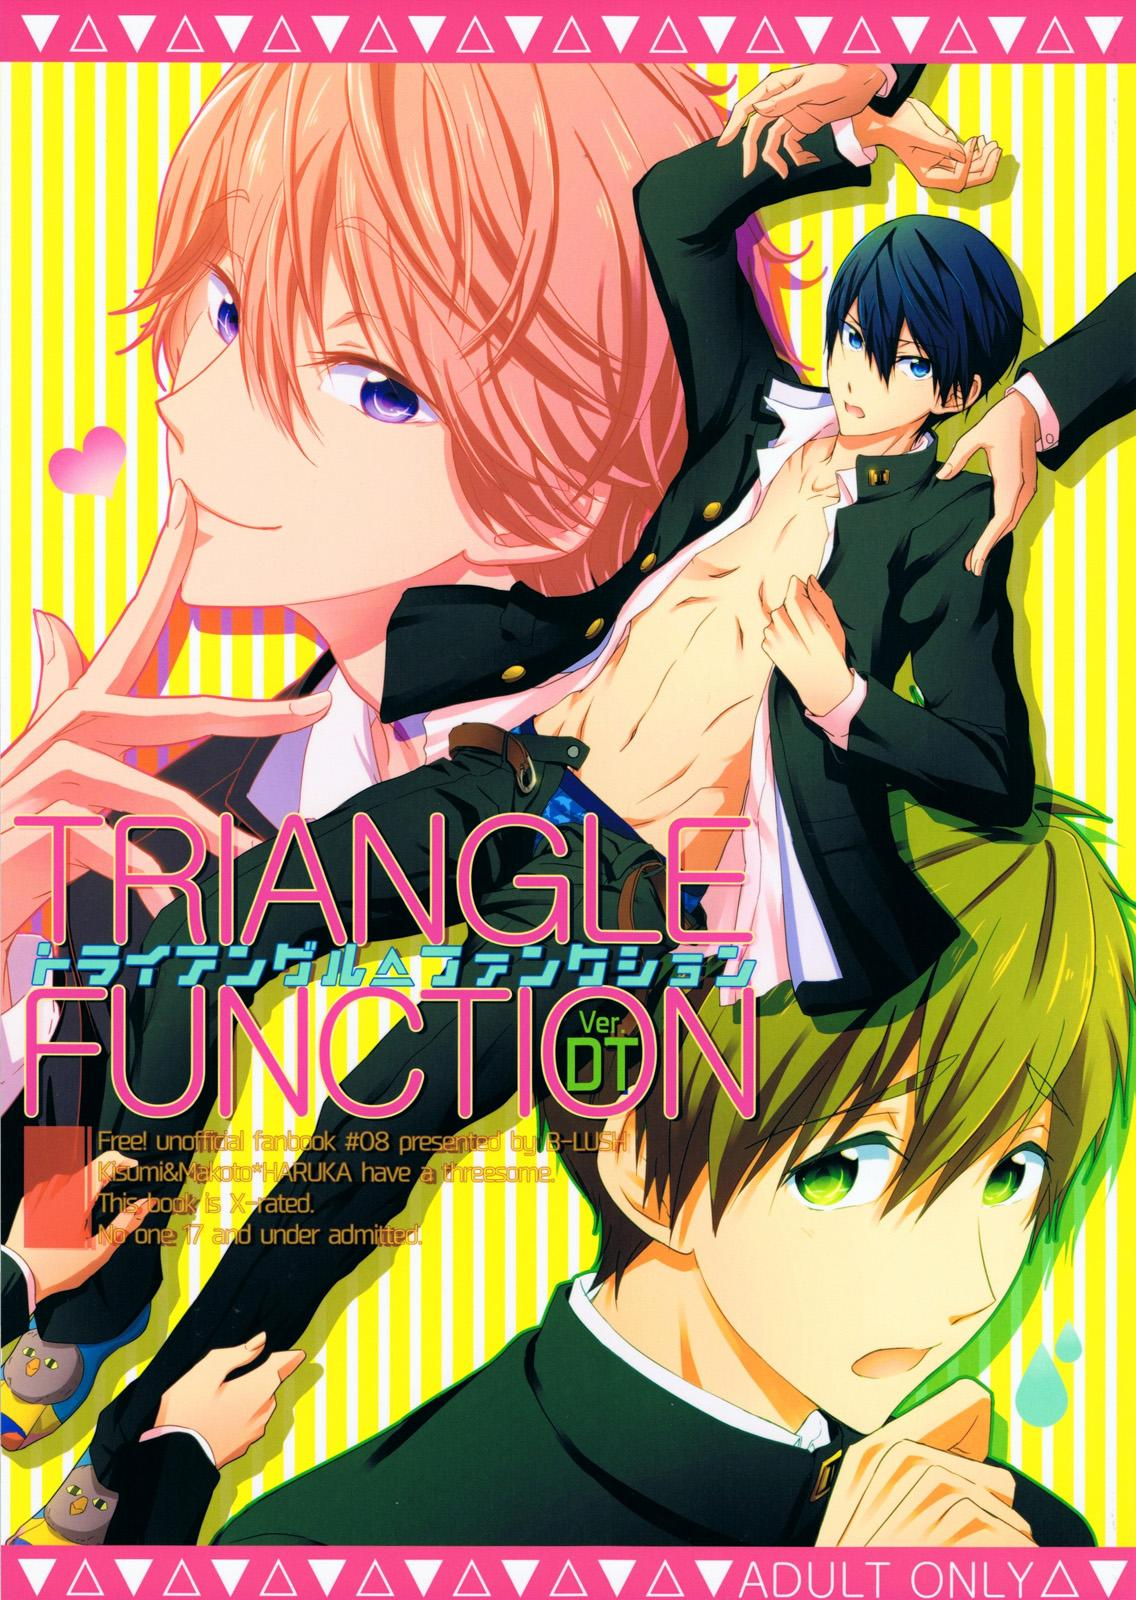 TRIANGLE FUNCTION ver. DT 0